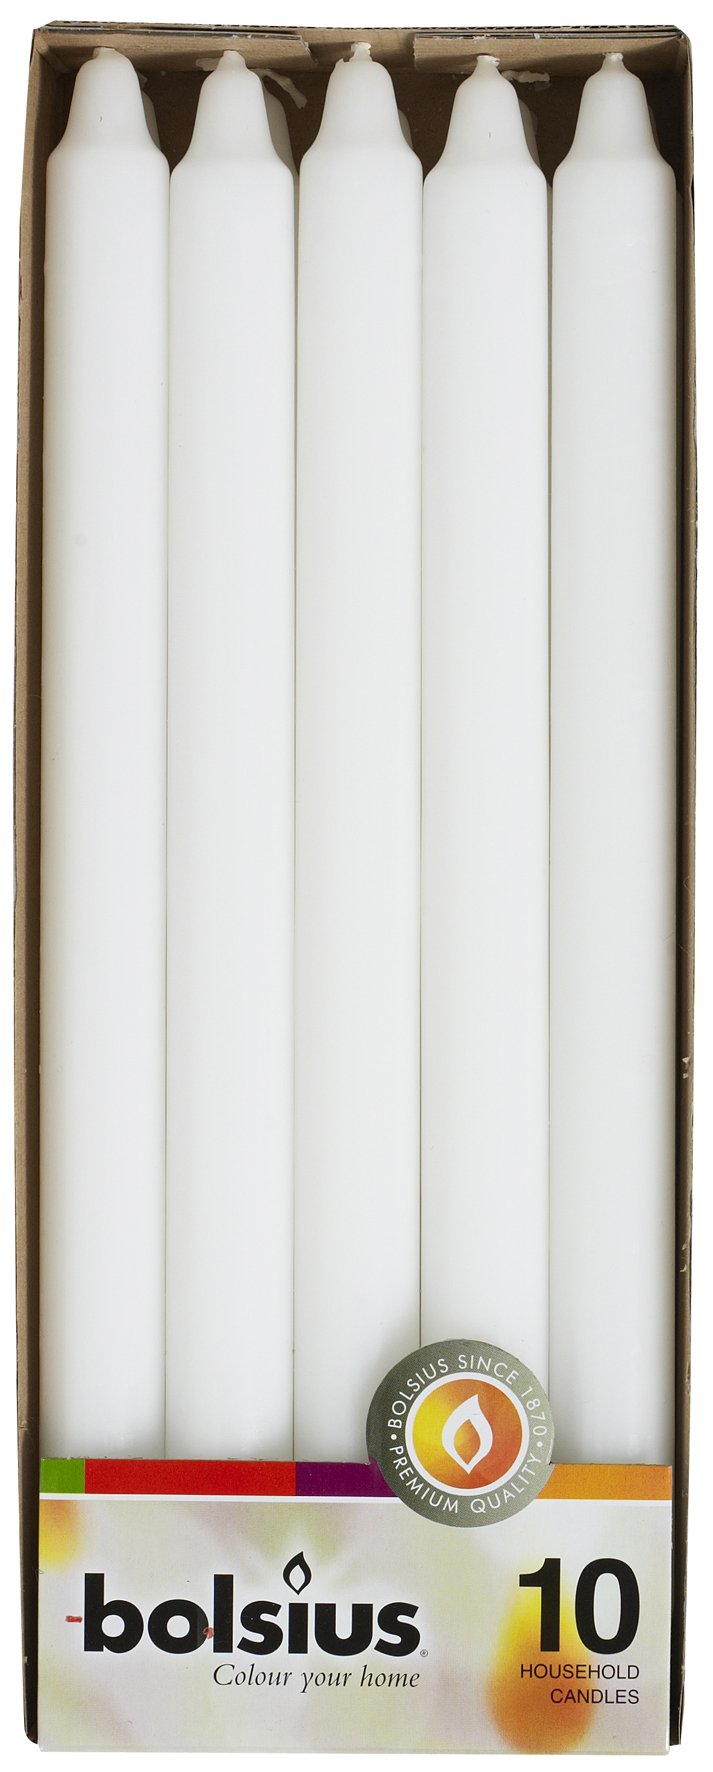 Bolsius Set 10-12 inch Household Taper White Candles by Bolsius